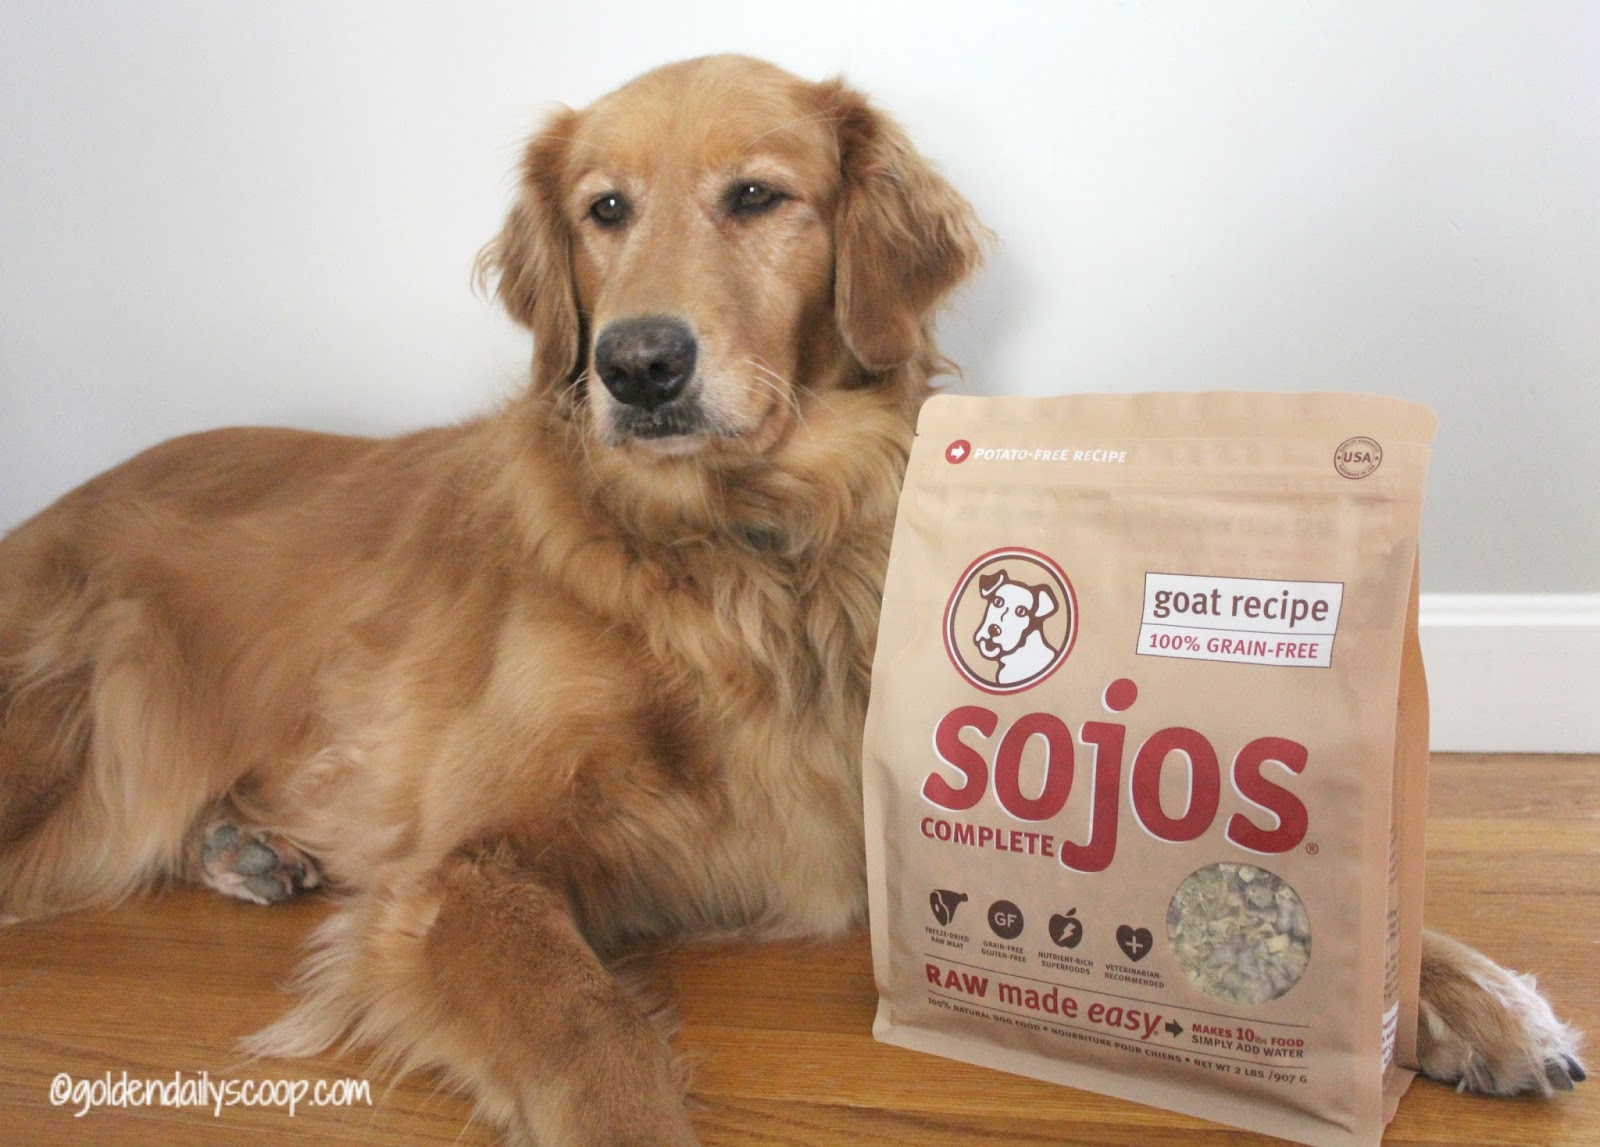 Sojos dog food treats your dog will simply love golden daily scoop sojos complete goat recipe raw dog food solutioingenieria Images